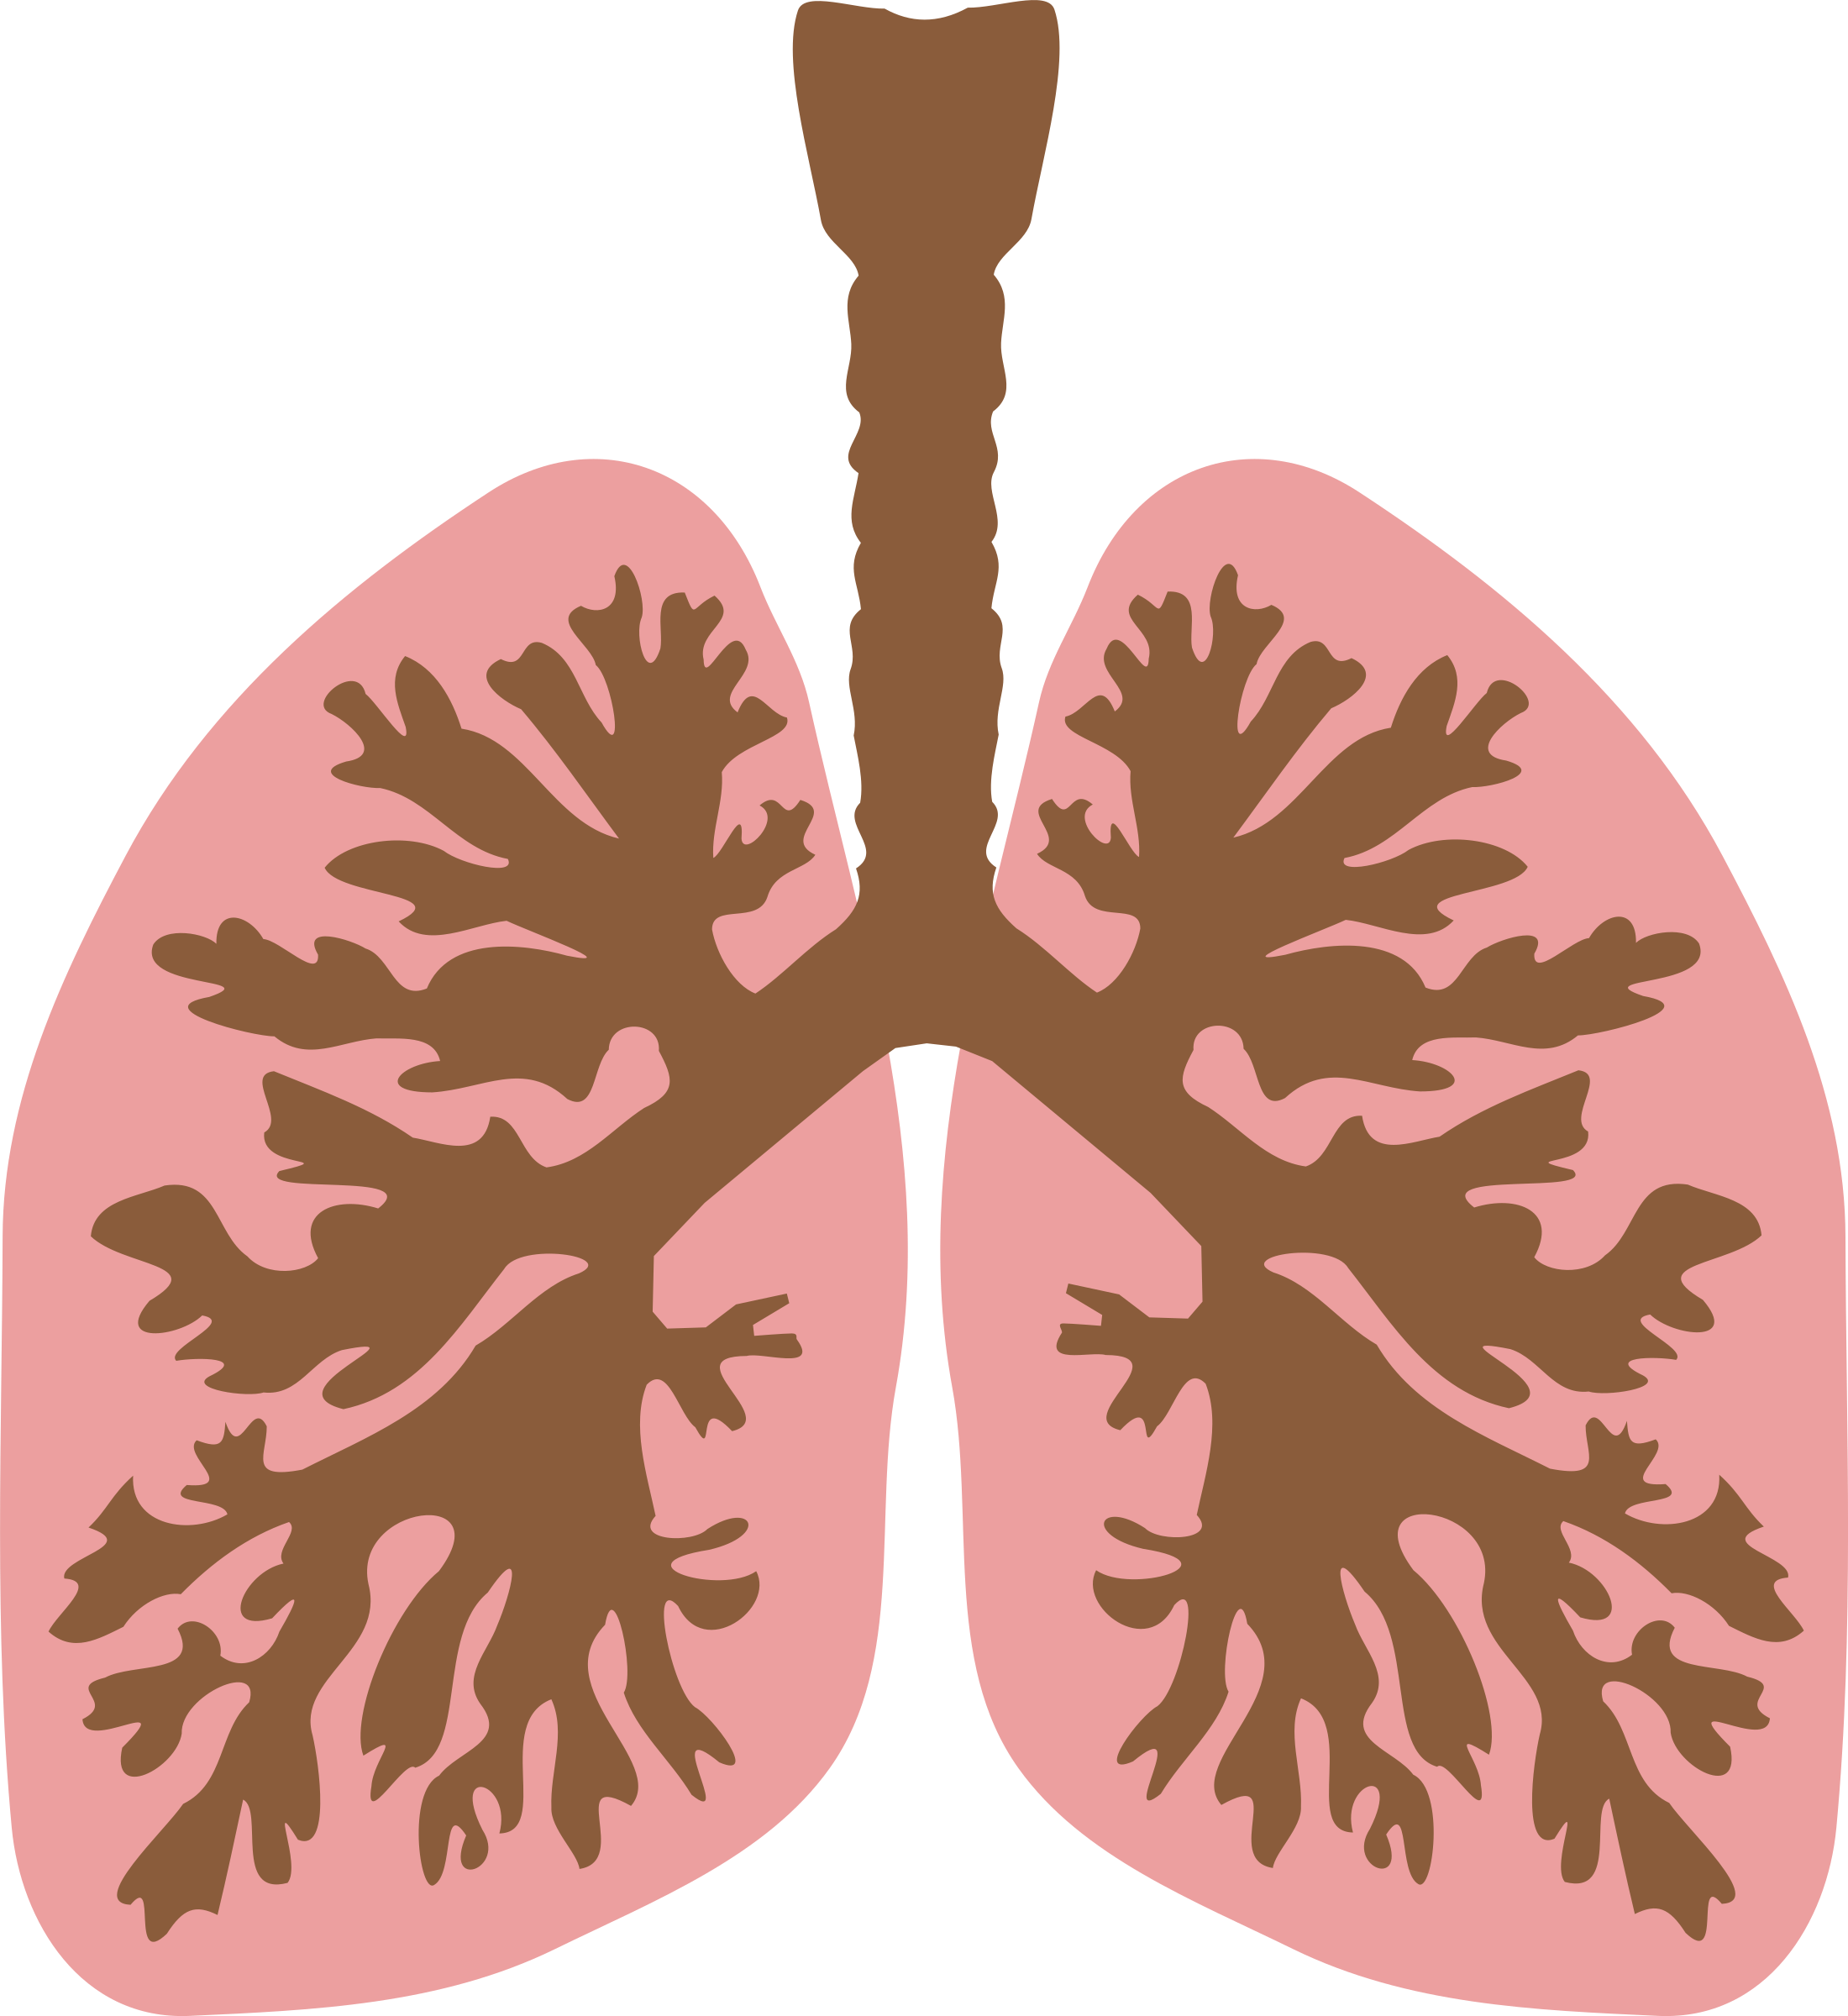 Lung panda free images. Lungs clipart coughing